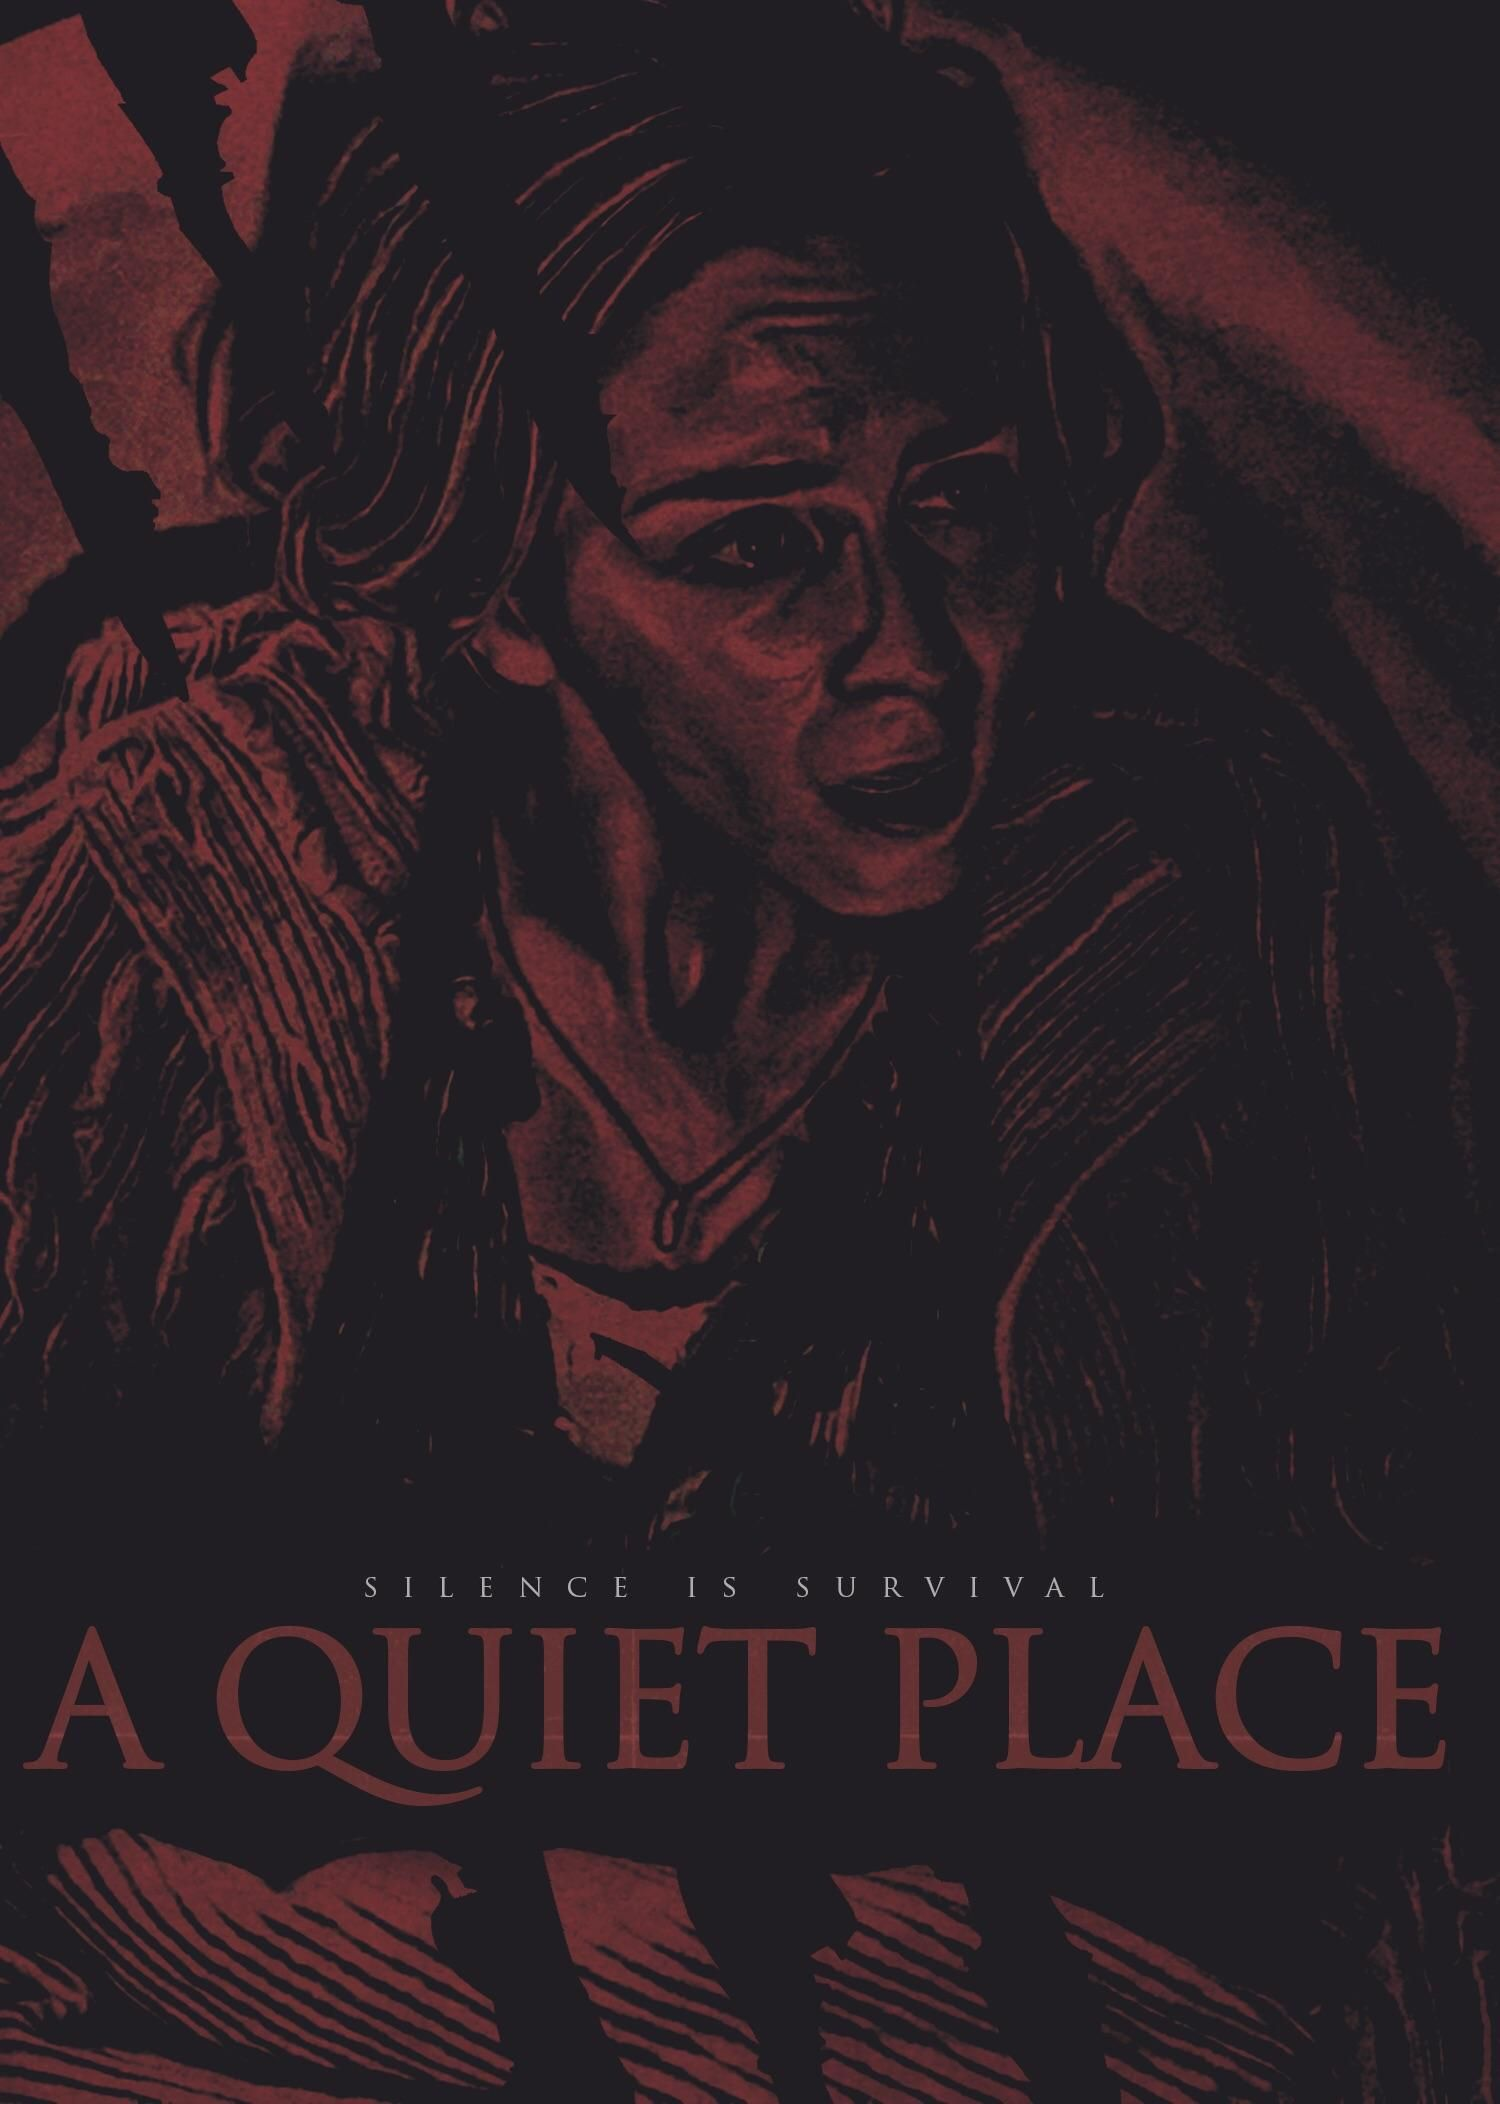 a quiet place 2018 1500x2104 movie poster in 2019